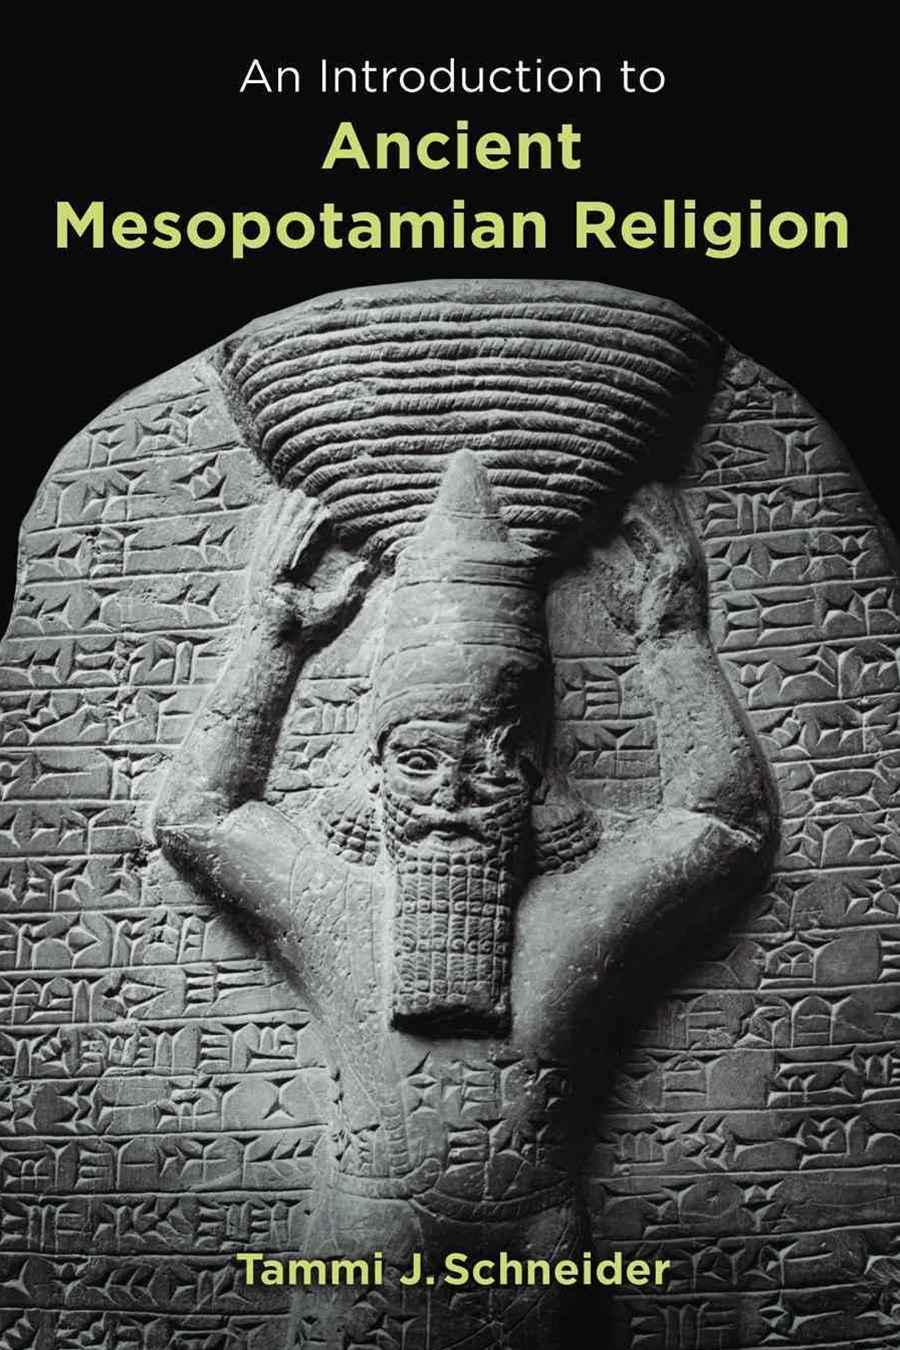 Introduction to Ancient Mesopotamian Religion